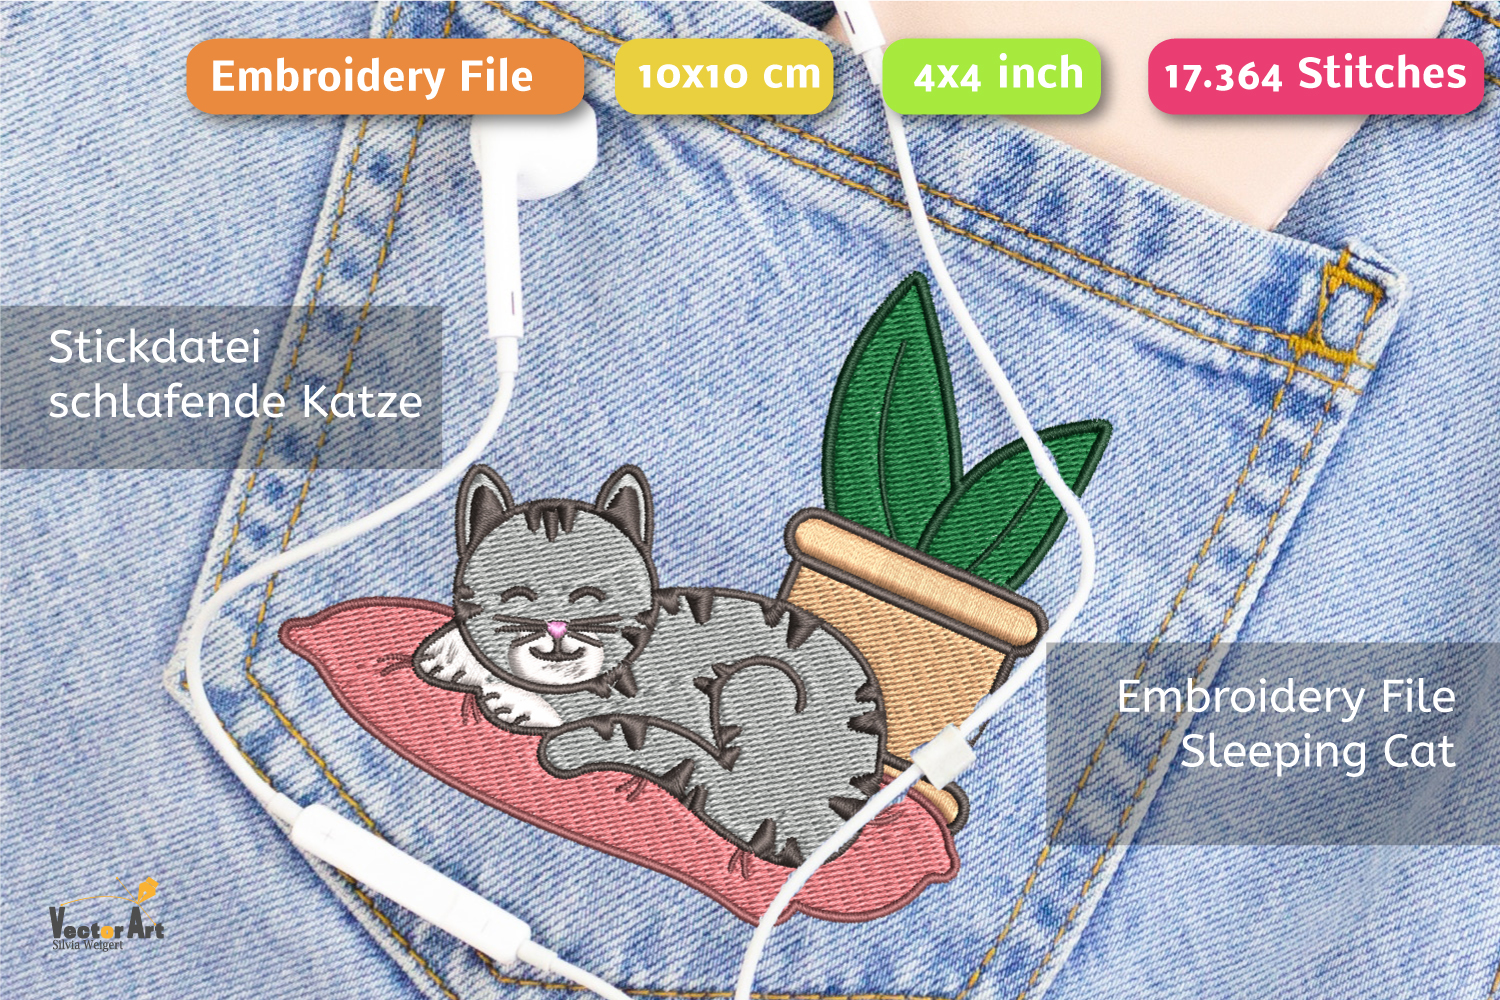 Sleeping Cat with Succulent - Embroidery File - 4x4 inch example image 1